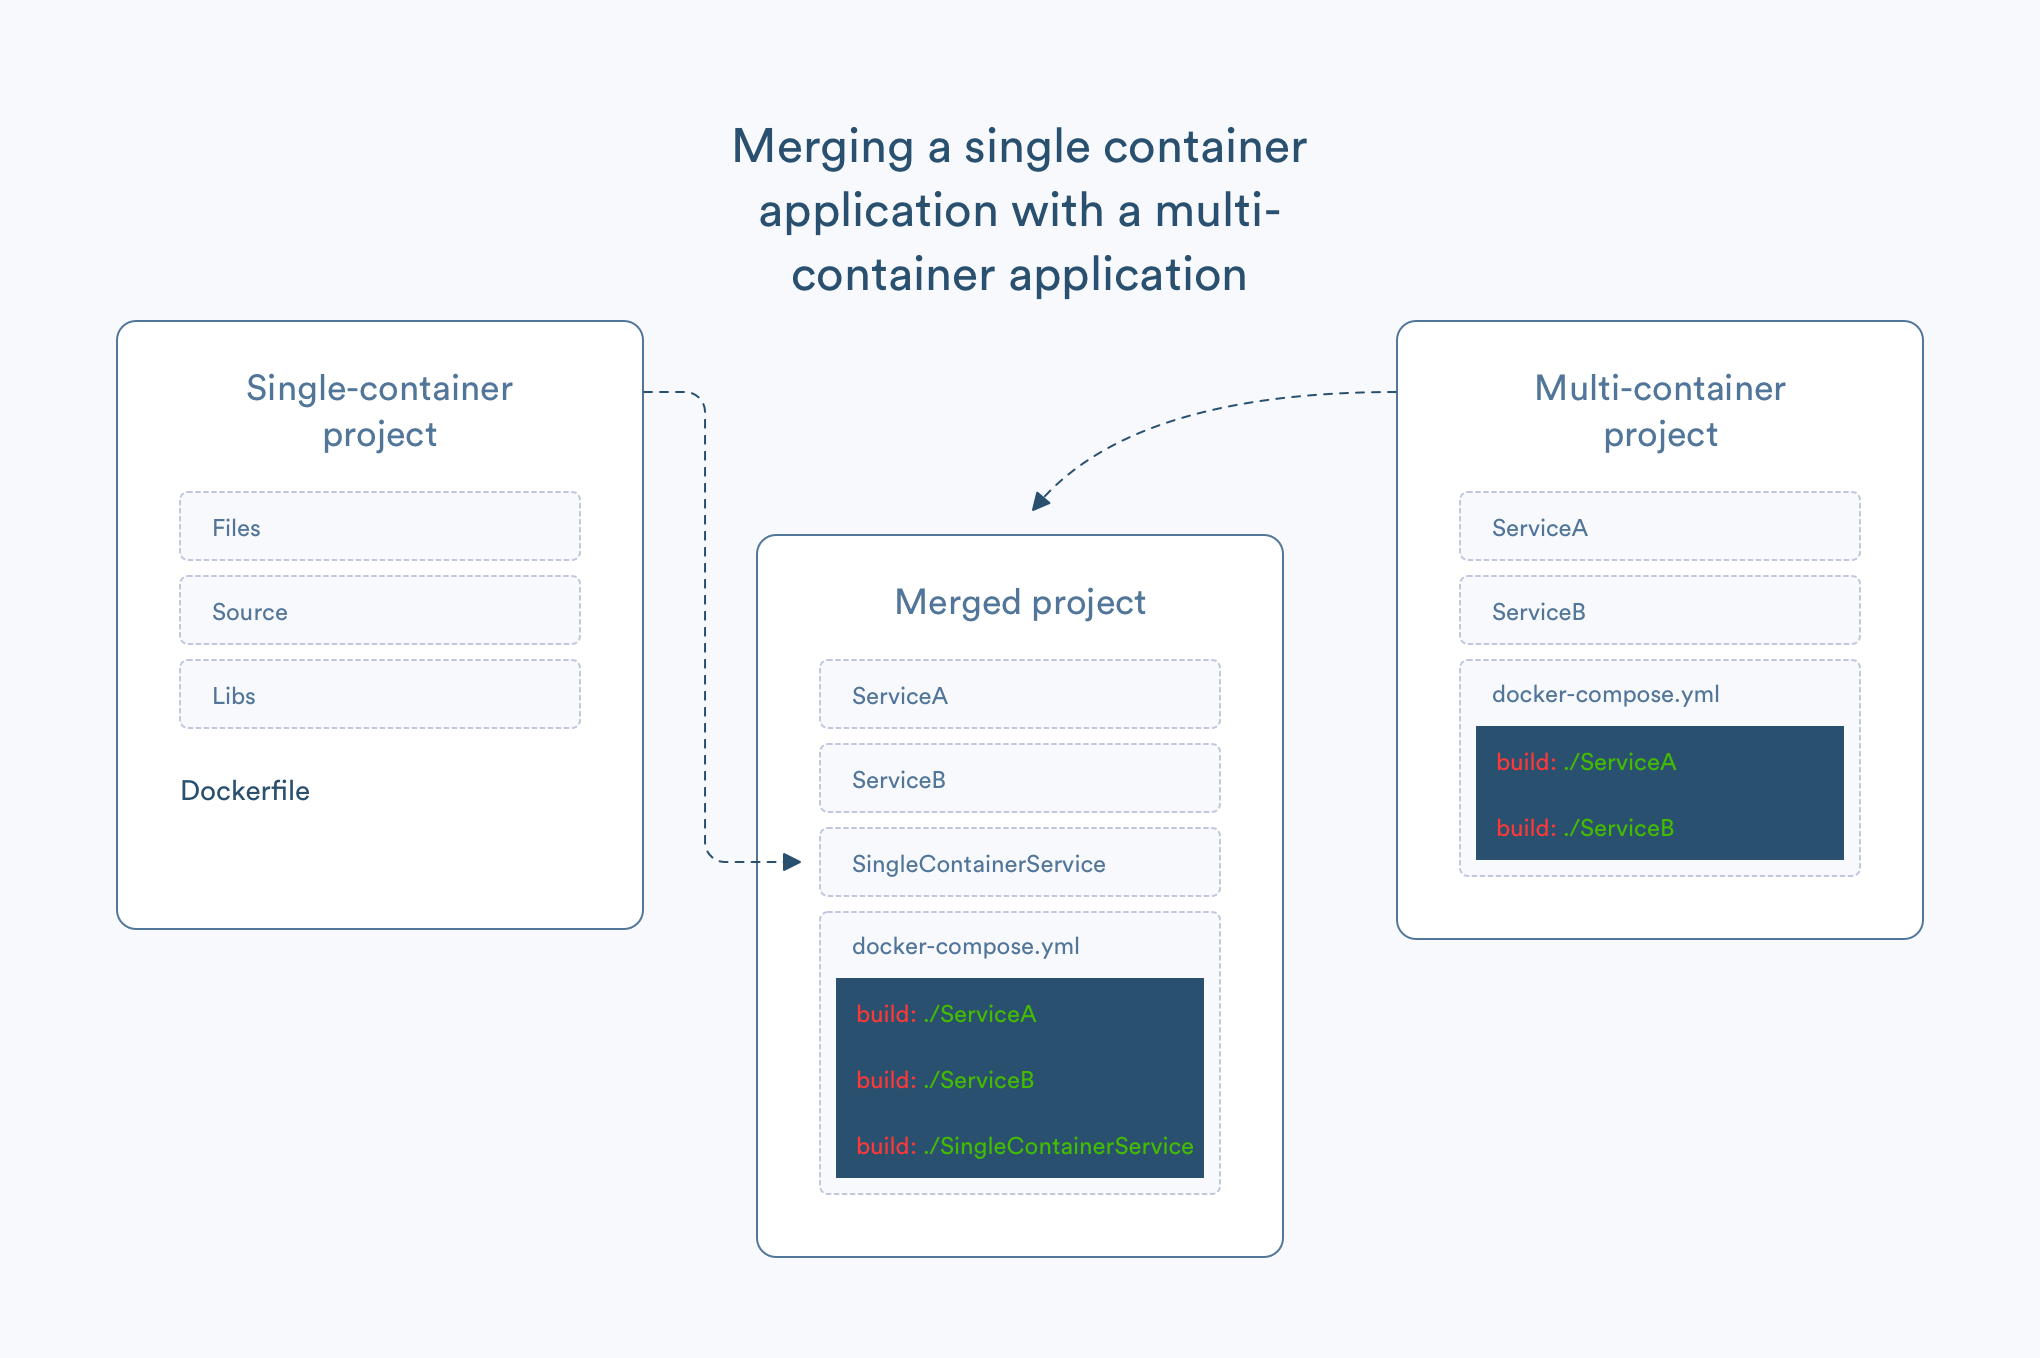 Merging a single container application with a multi-container application